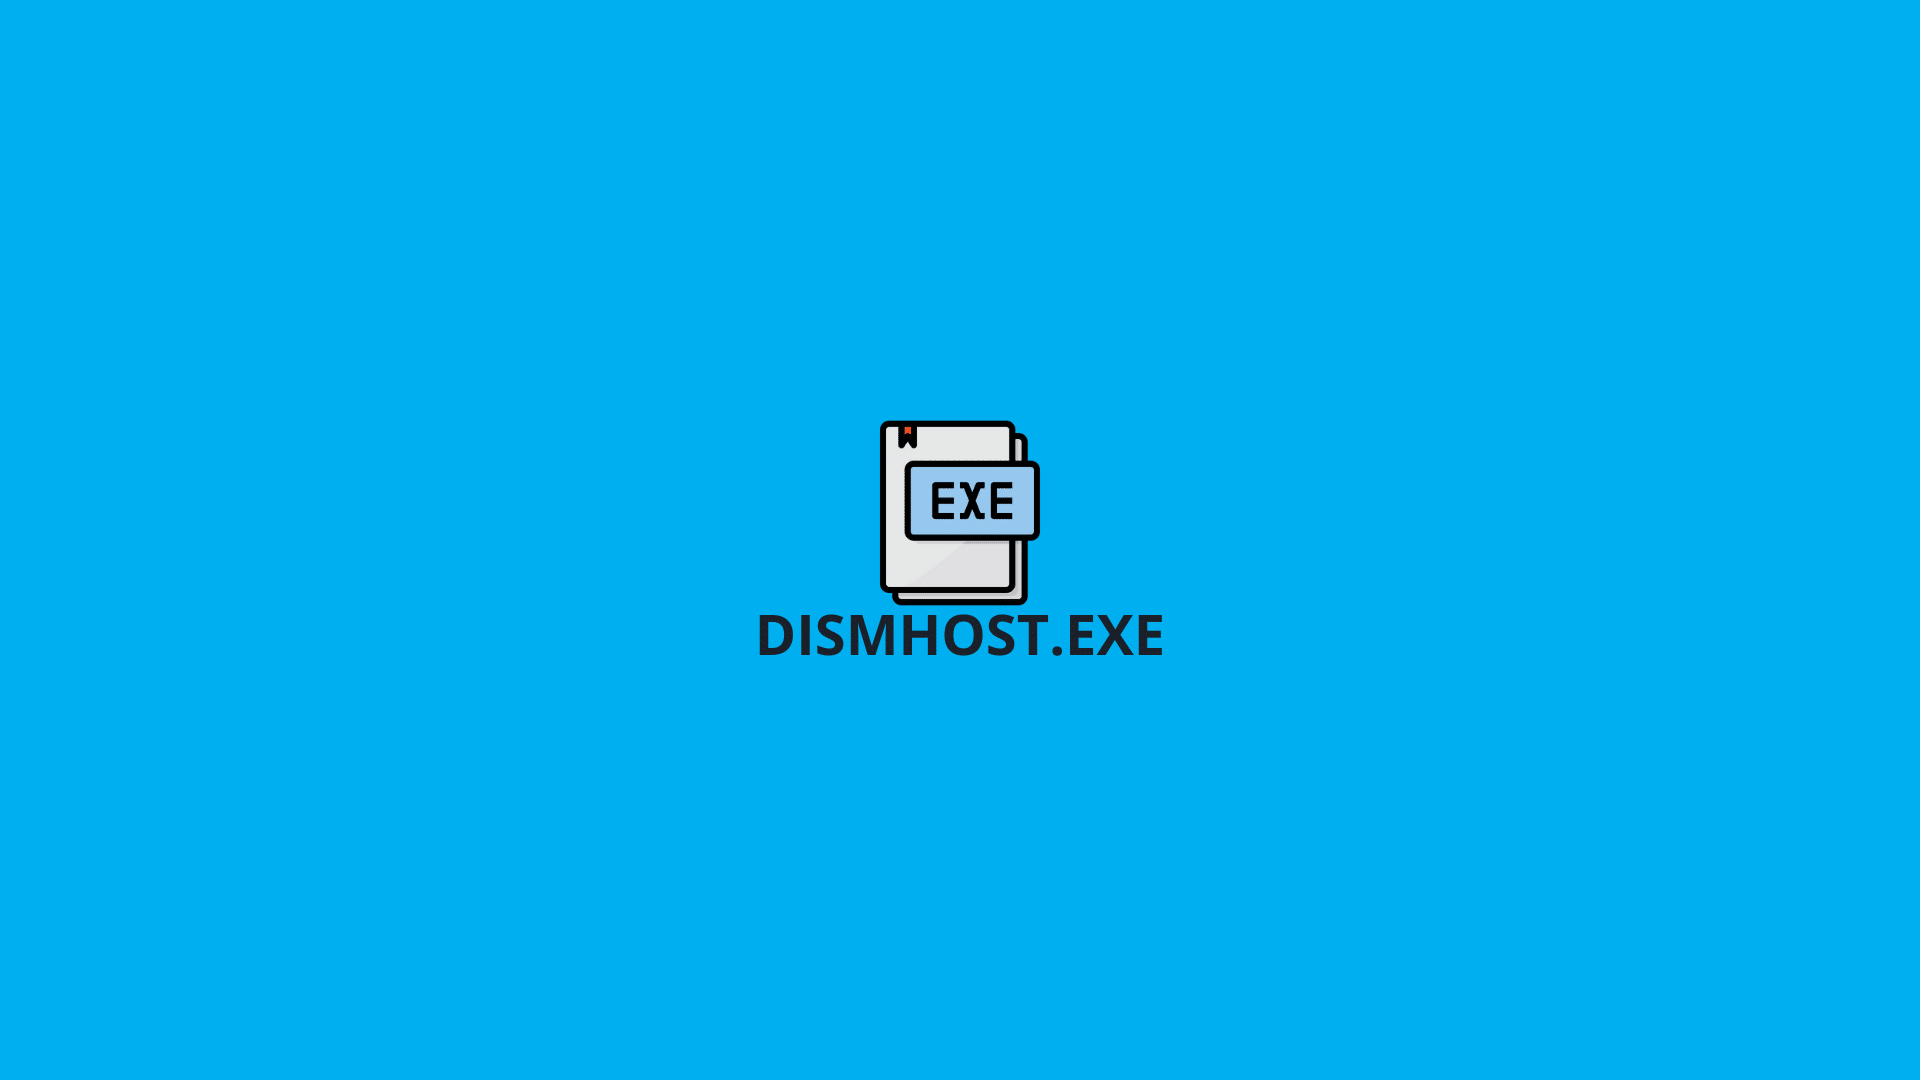 DismHost.exe